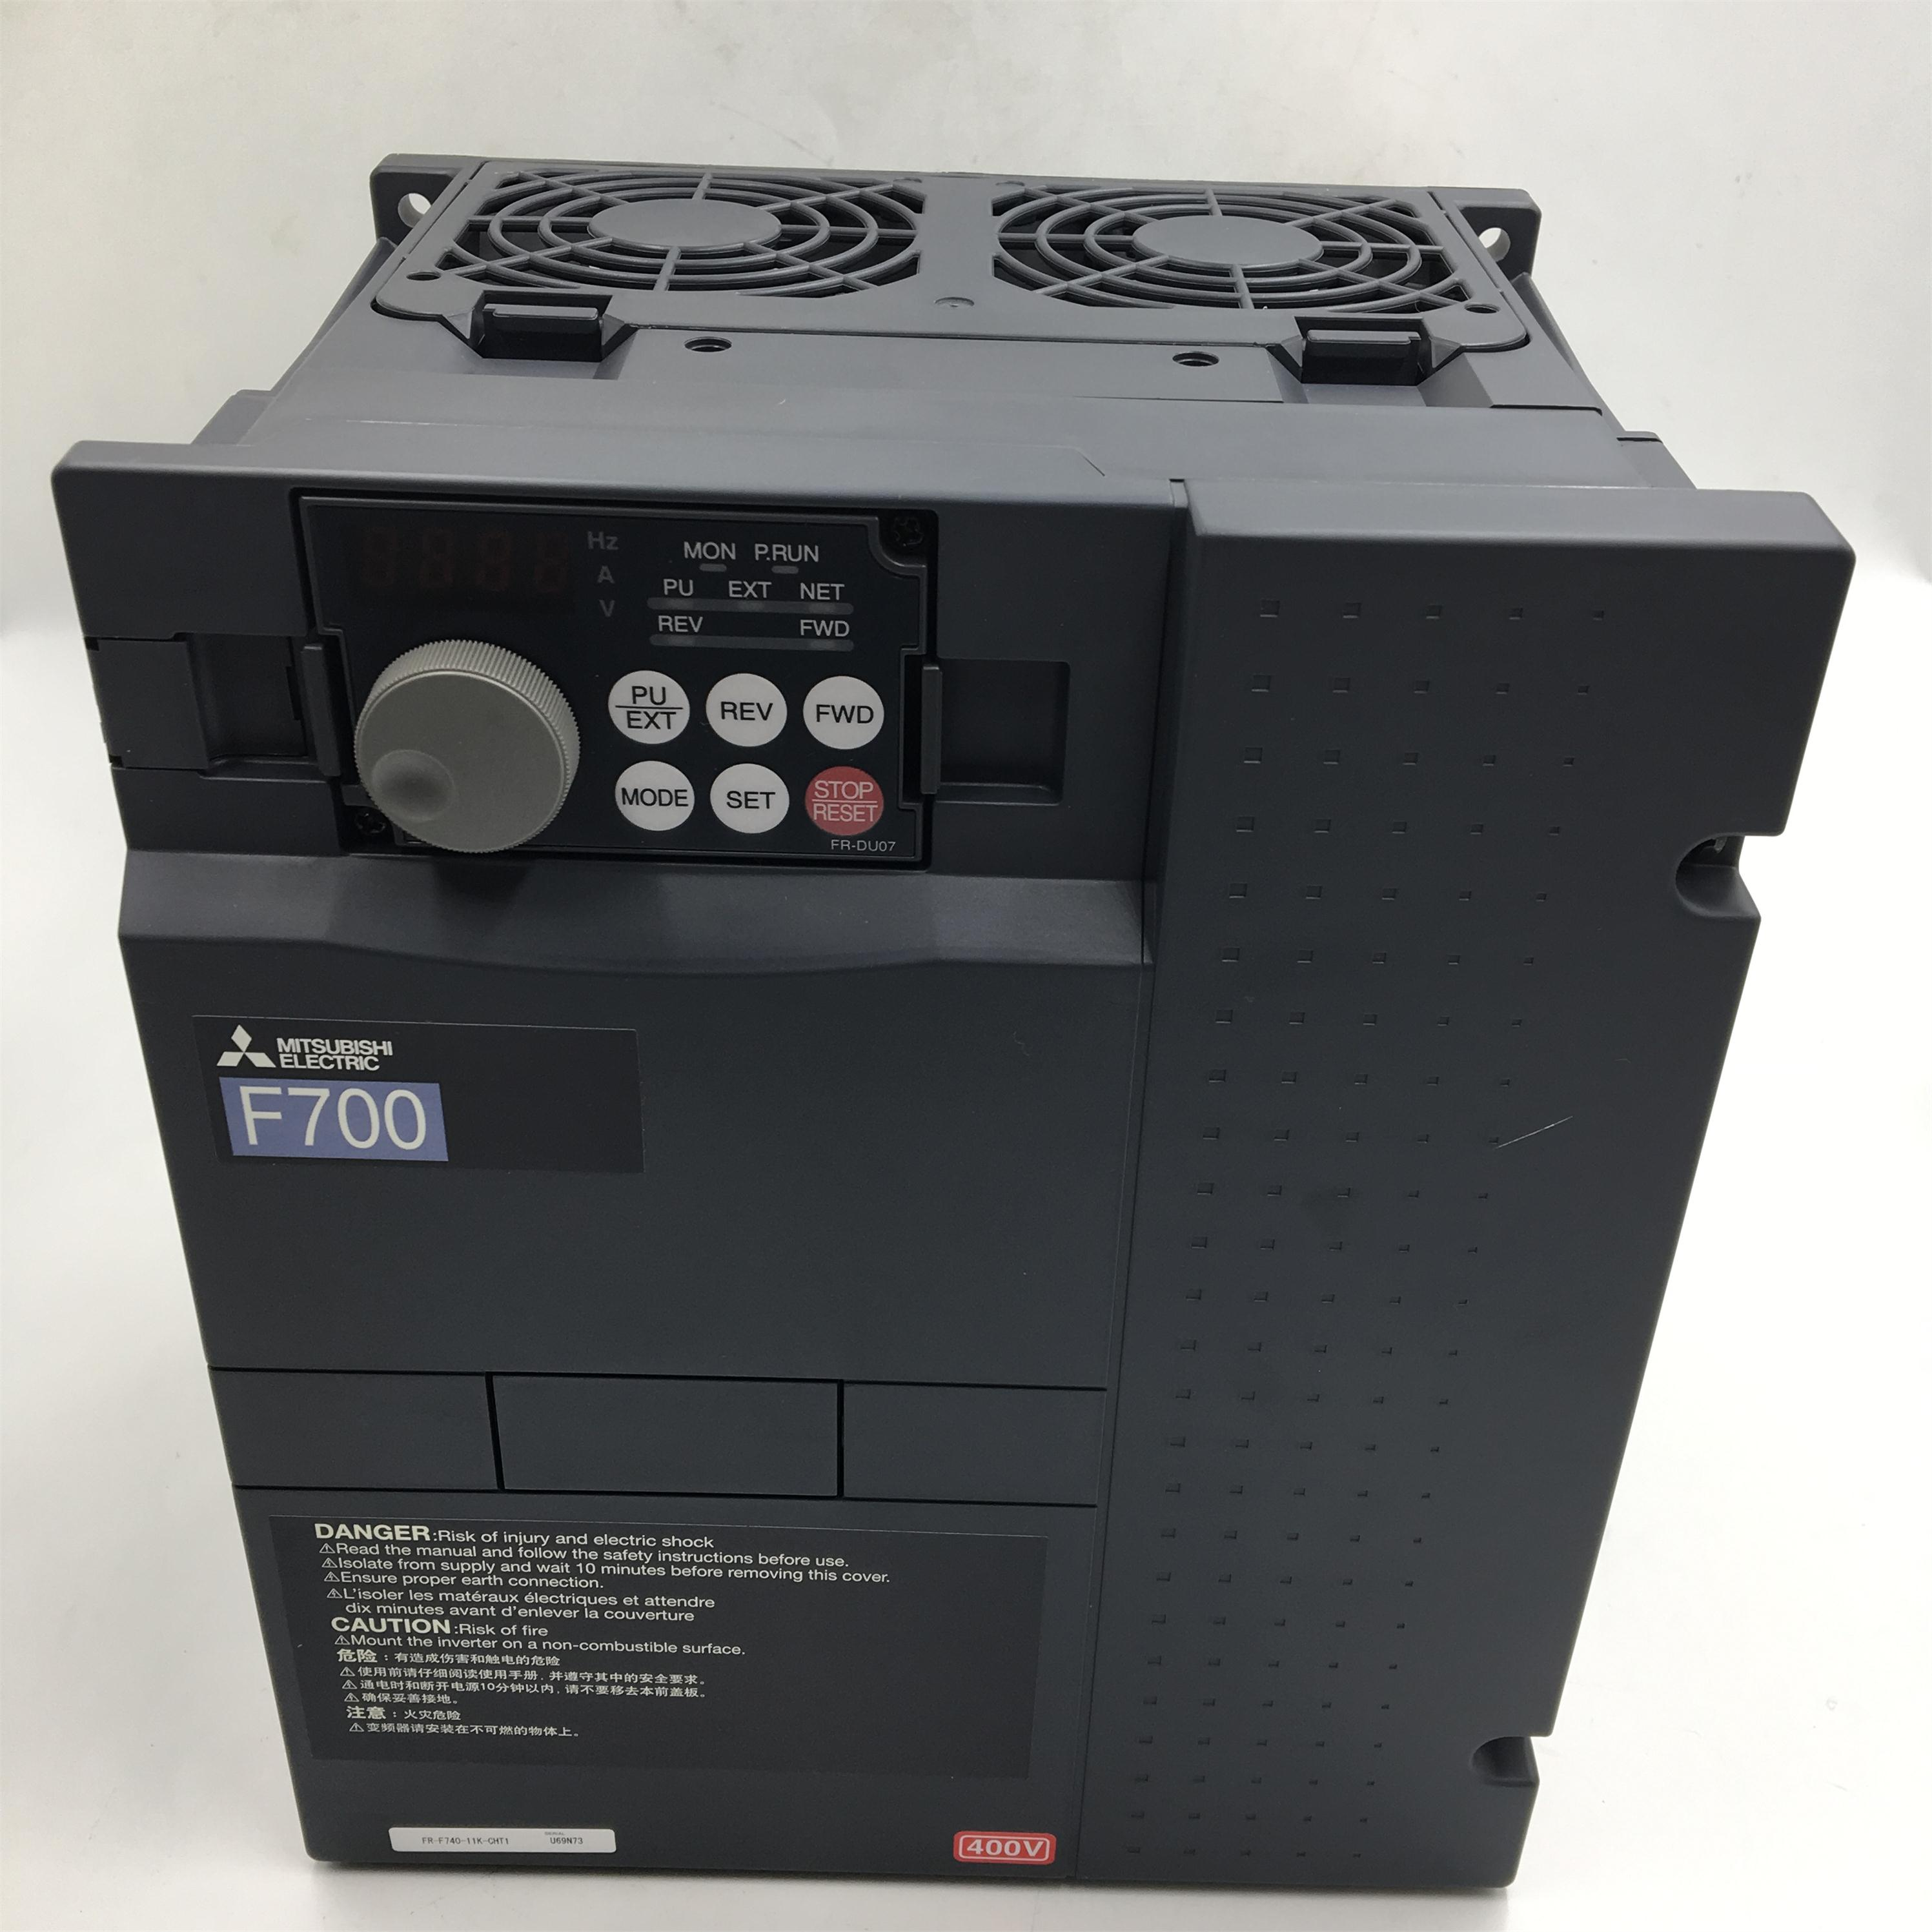 11kw vfd inverter 3ph 380 480v 23a variable frequency driver fr a740 rh ebay com mitsubishi vfd fr-a740 manual fr-a740-5.5k manual